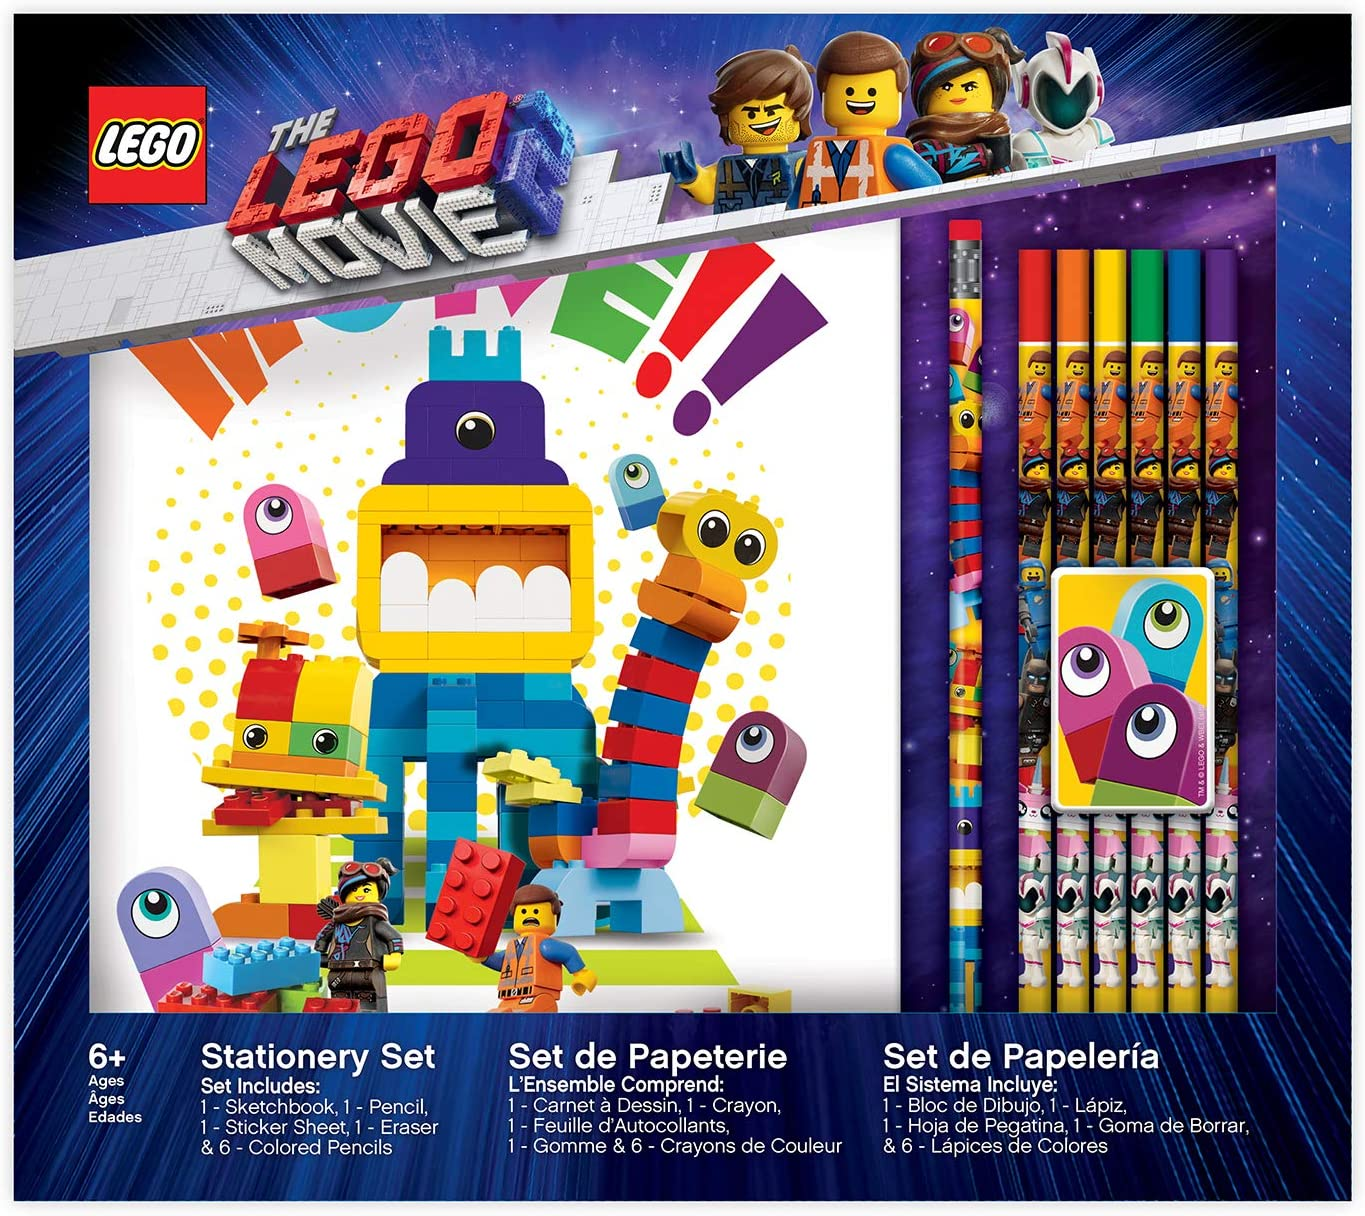 LEGO Ninjago Stationery Boxed Set with Sketchbook